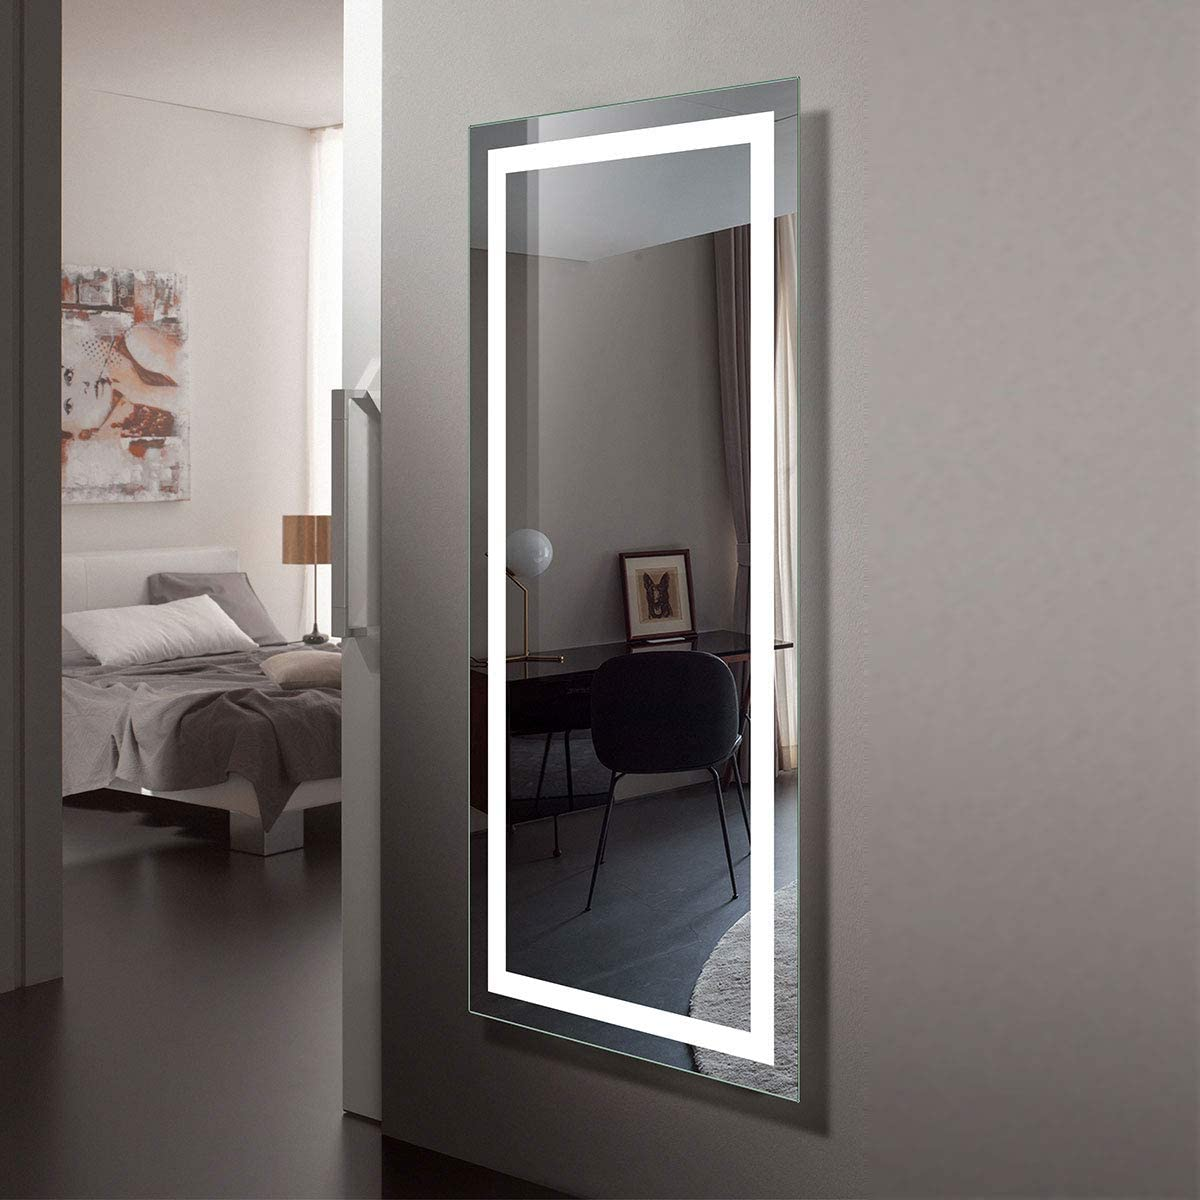 Large 70 x32 LED Full Length Backlit Mirror- Antifog Oversized Rectangle Dressing Illuminated Mirror with Infrared Sensor, Wall-mounted Full Size Wall Frameless Mirror with LED lights CK010-7032-GS